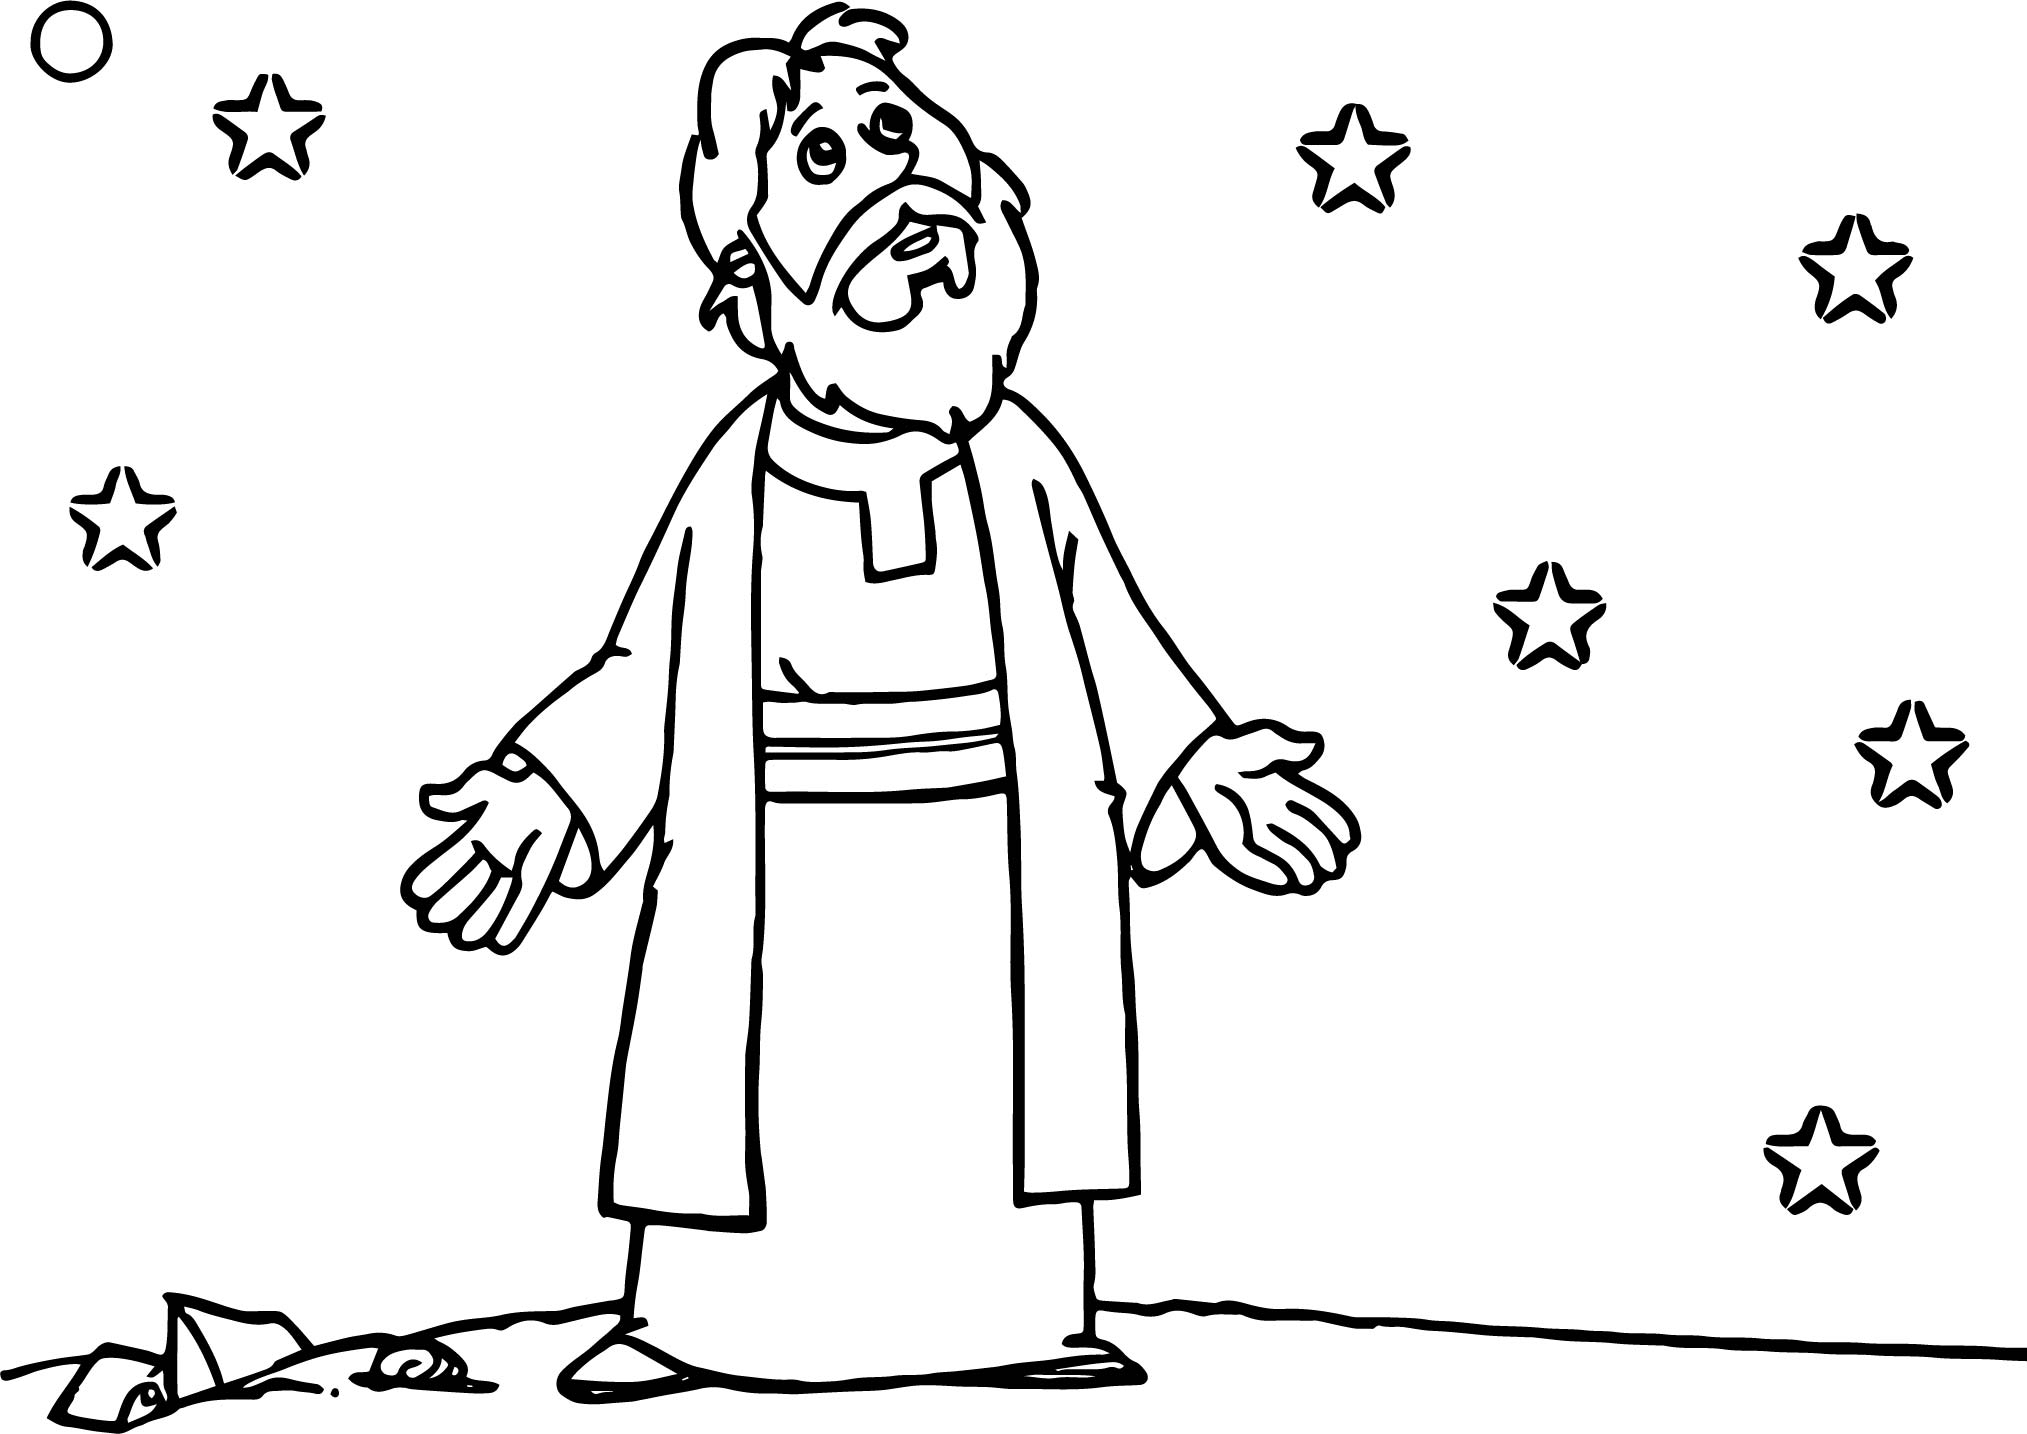 abraham and sarah coloring pages biblical abraham sarah night coloring page - Abraham And Sarah Coloring Pages